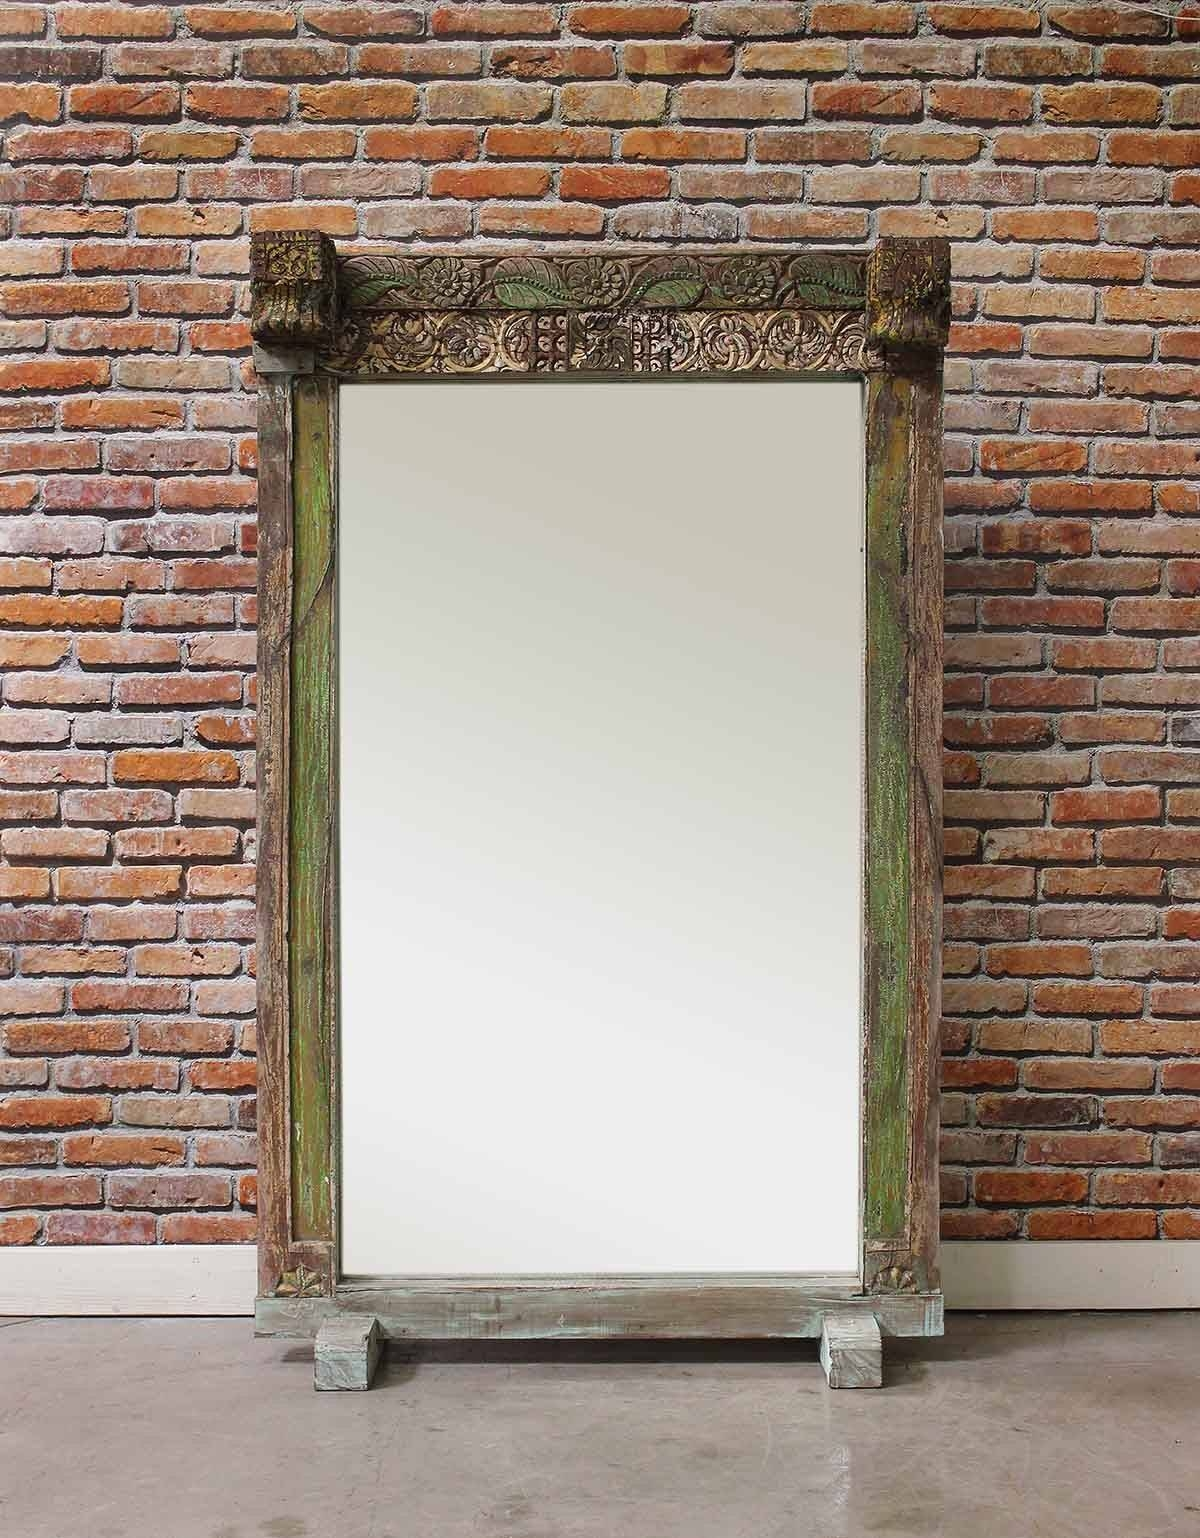 Lime Green Vintage Floor Mirror - Mirrors - Home Furnishings intended for Large Vintage Floor Mirrors (Image 7 of 15)